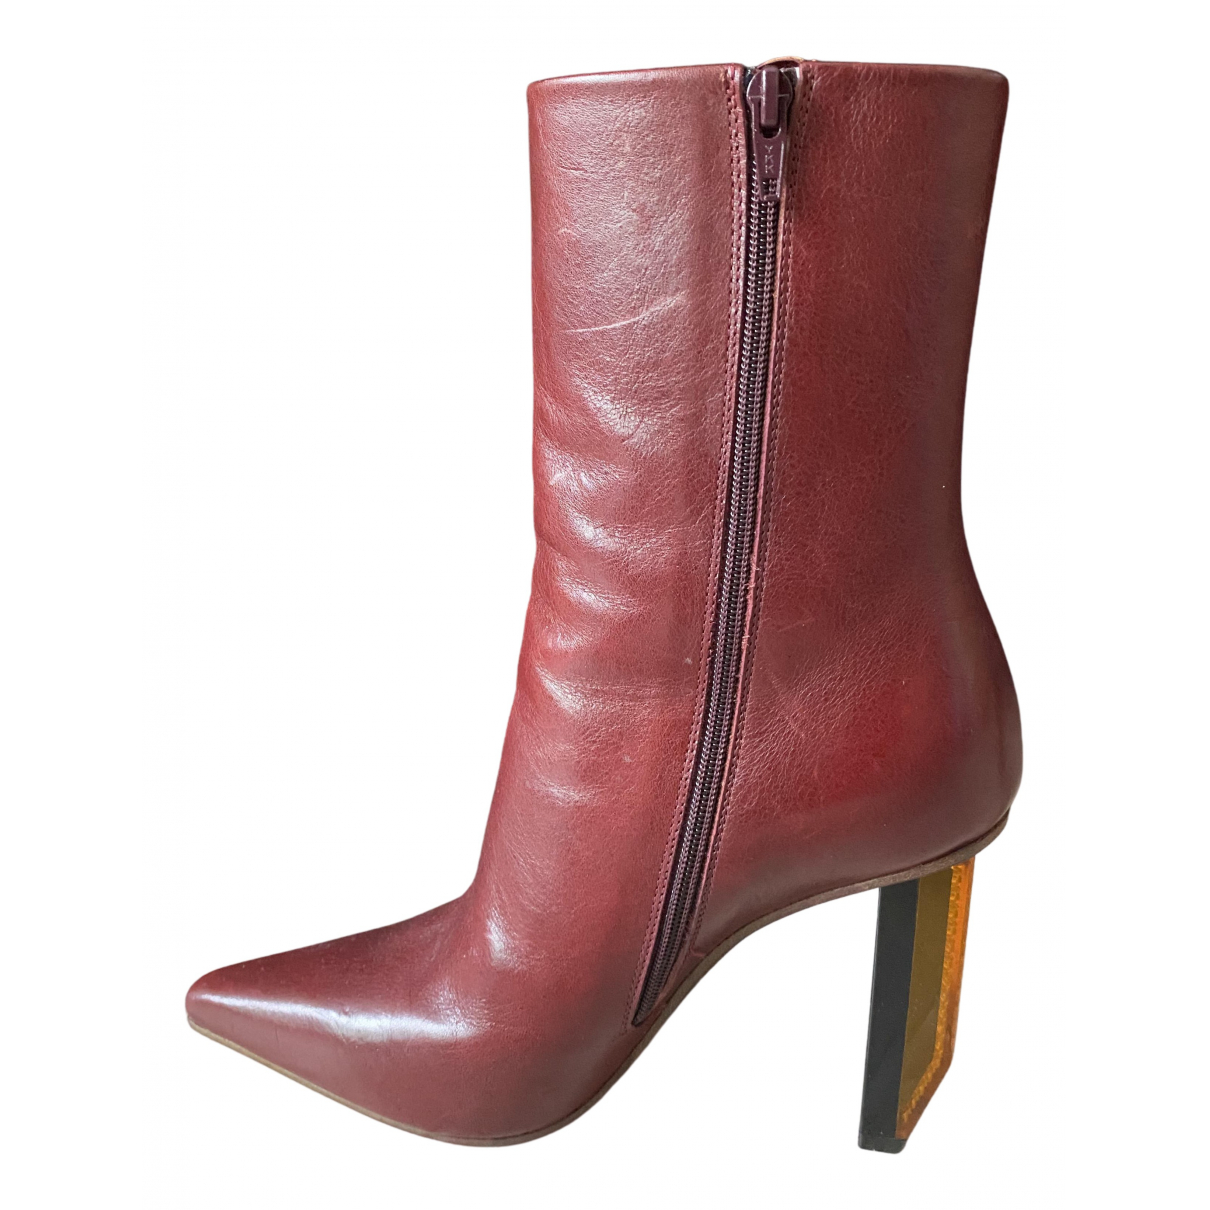 Vetements N Burgundy Leather Boots for Women 35 EU